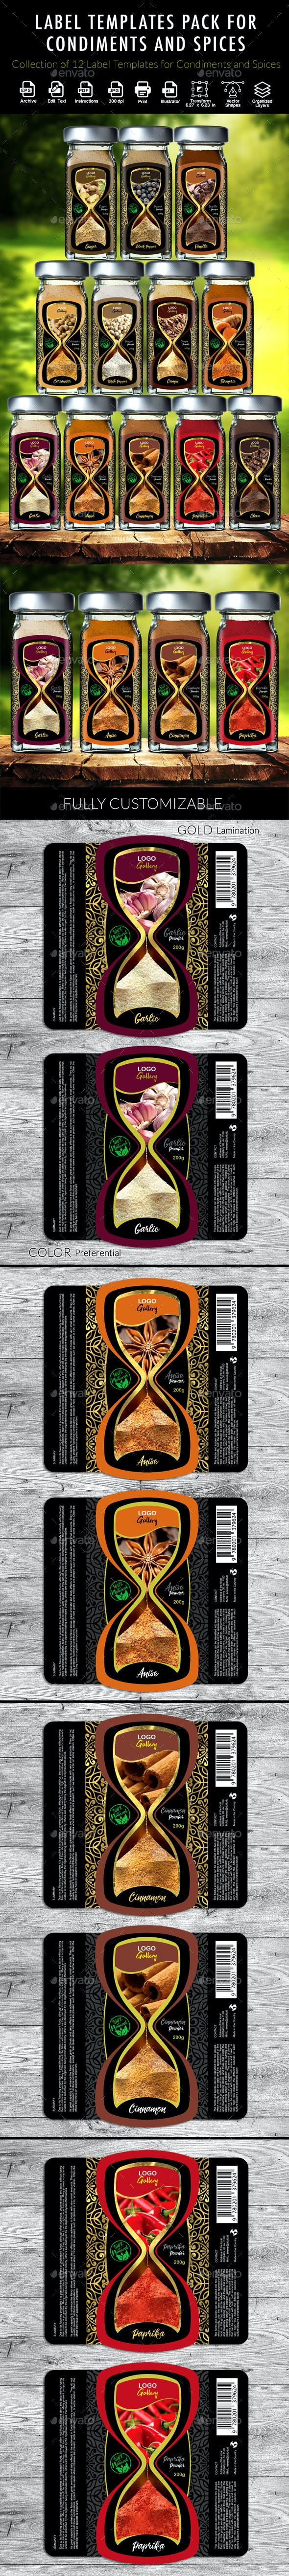 Label Templates for Condiments and Spices Packaging and Flasks